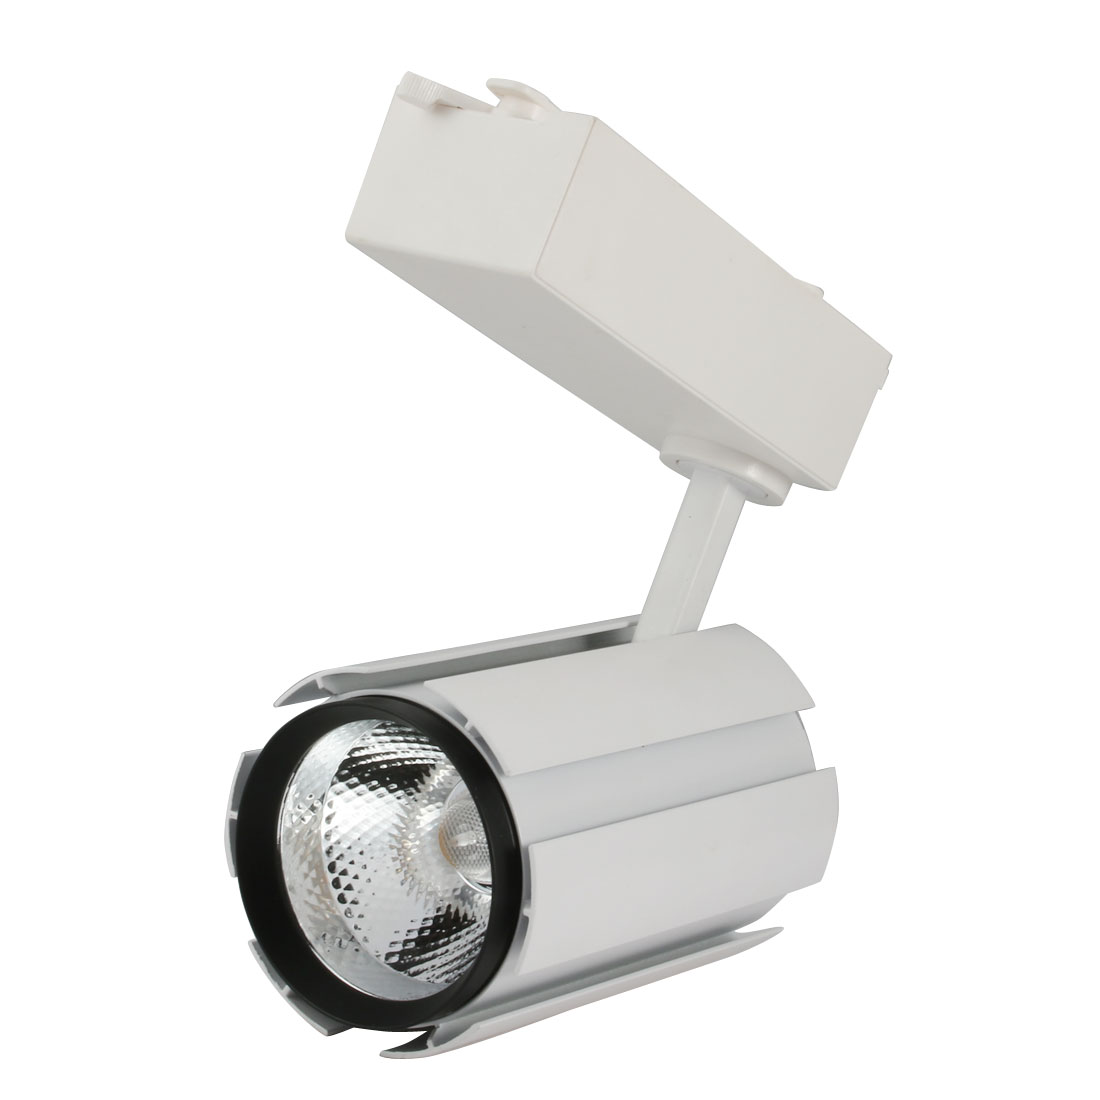 AC85-265V 30W COB Chip LED Track Rail Light Spotlight Fixture Warm White Light